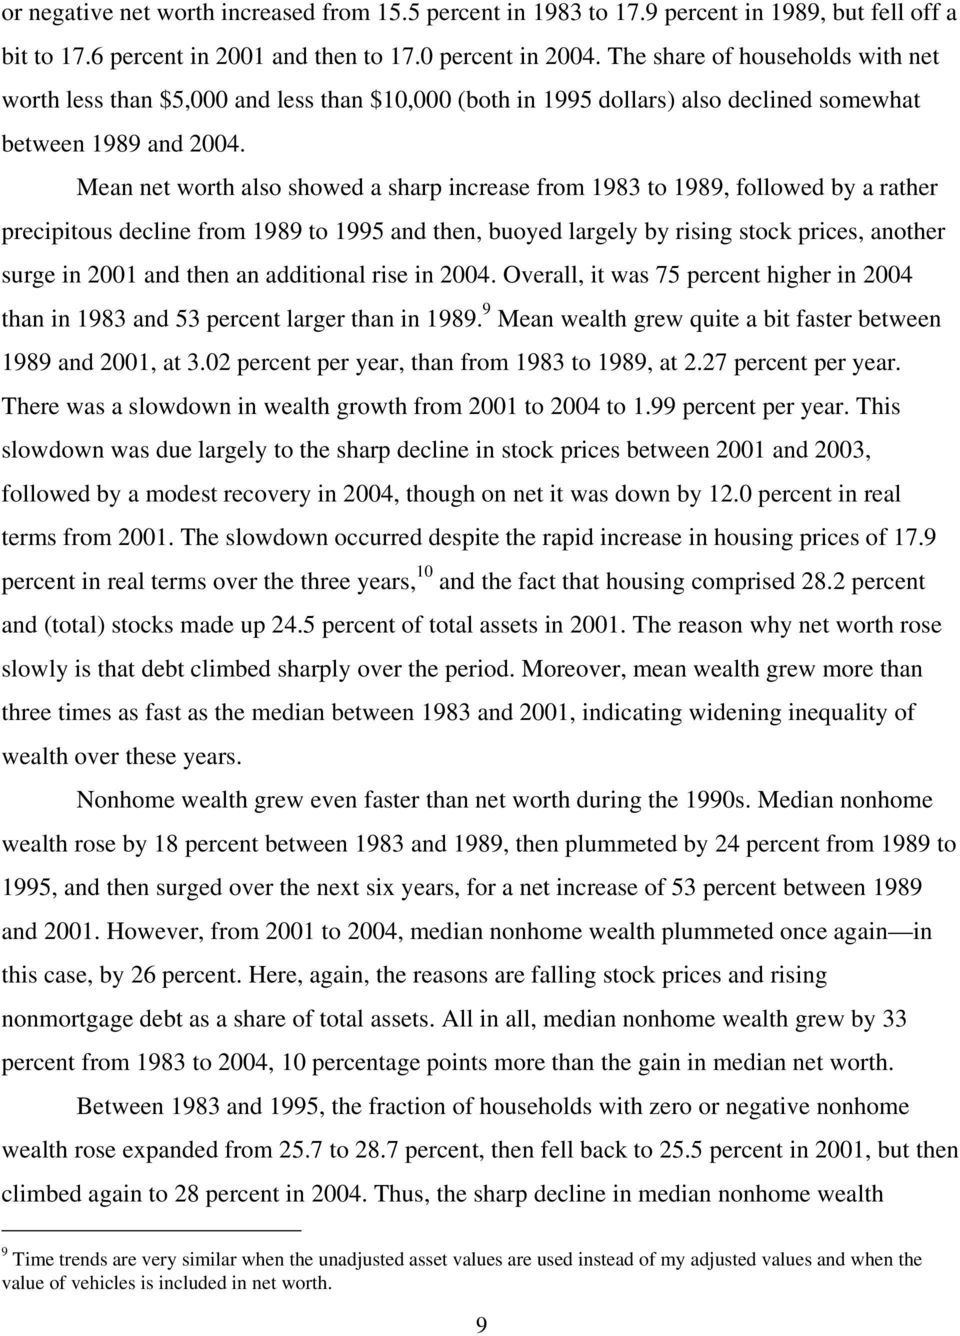 Mean net worth also showed a sharp increase from 1983 to 1989, followed by a rather precipitous decline from 1989 to 1995 and then, buoyed largely by rising stock prices, another surge in 2001 and